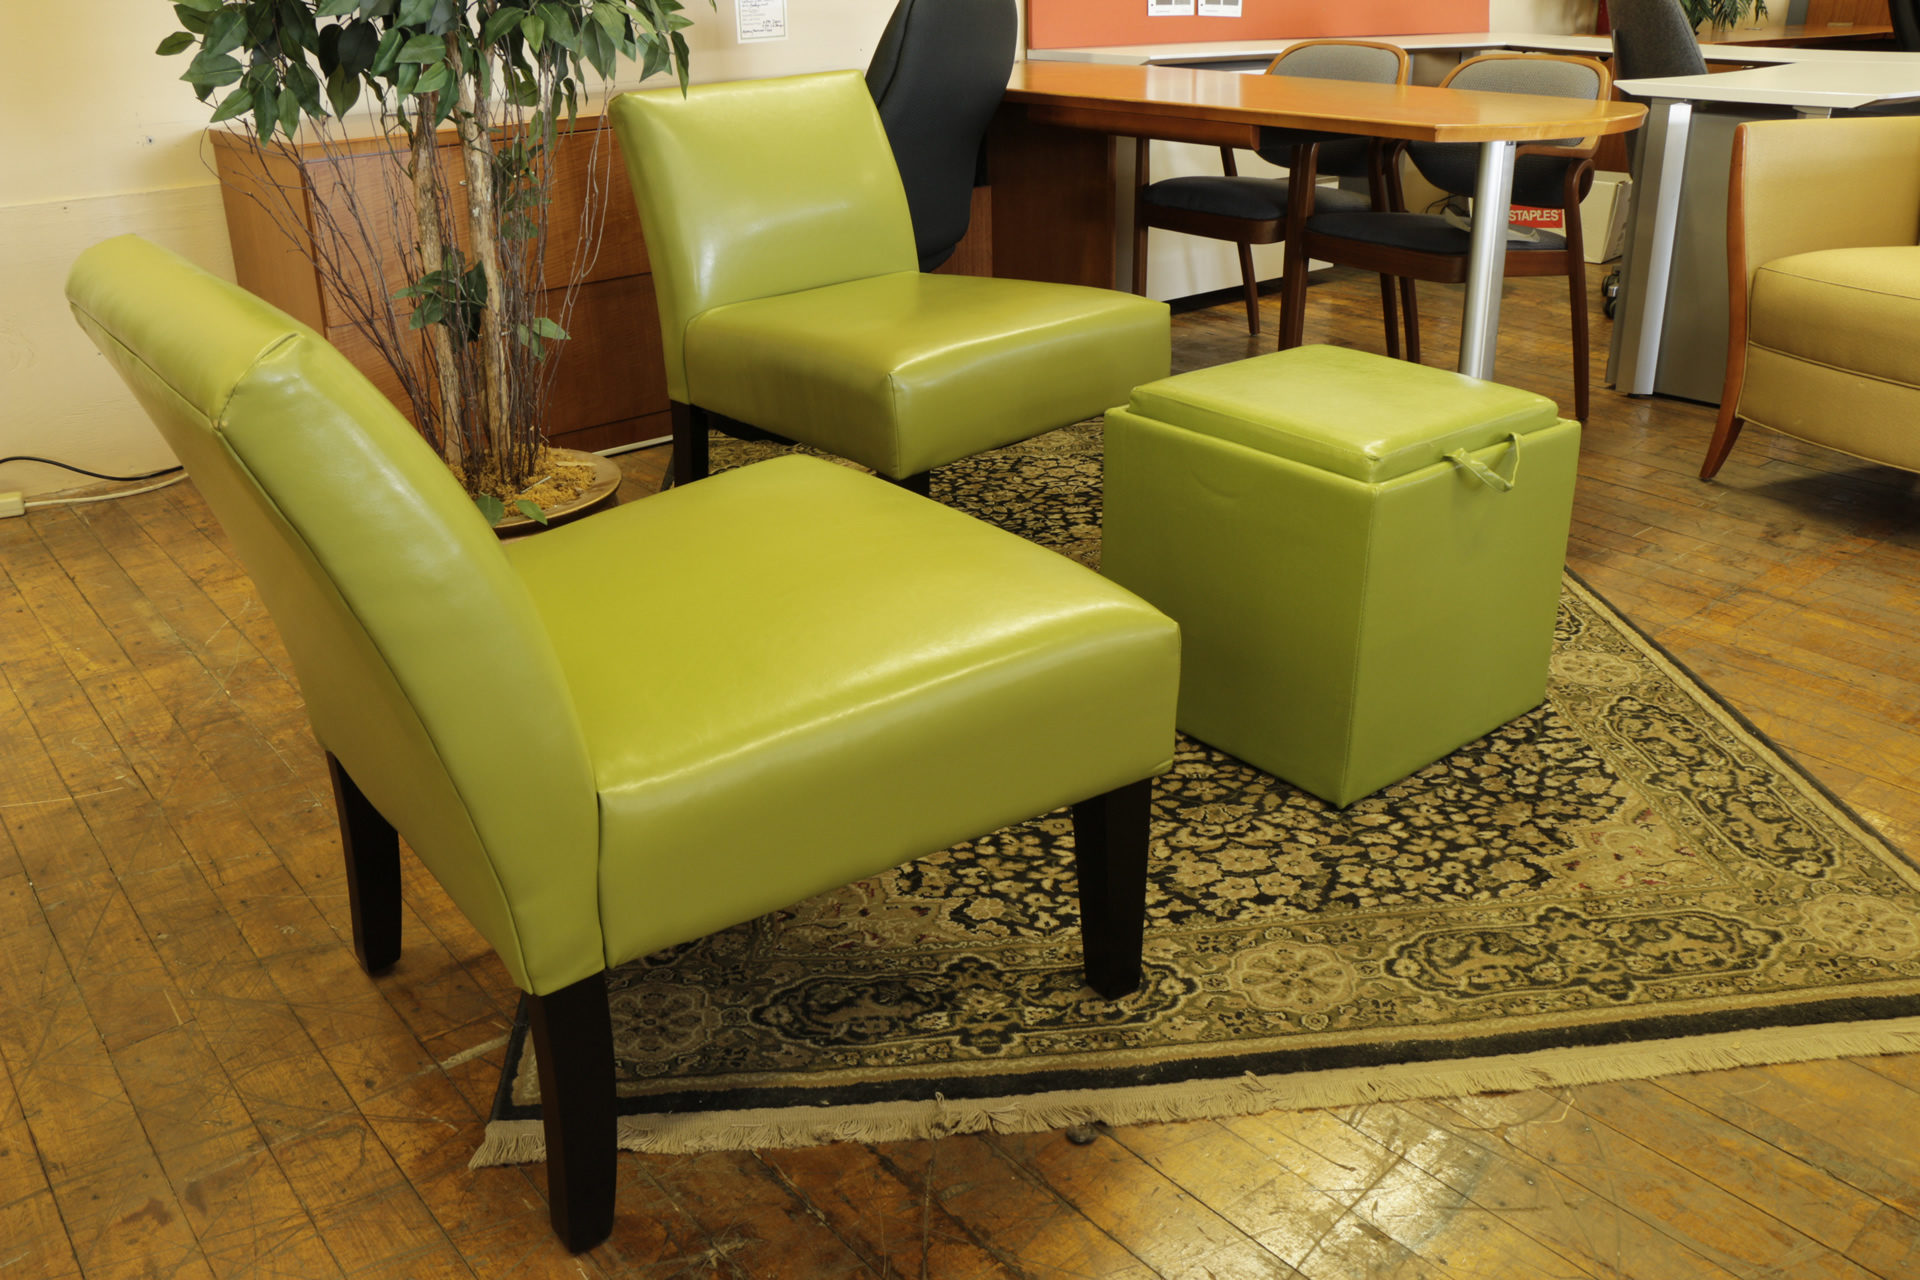 peartreeofficefurniture_peartreeofficefurniture_mg_2028.jpg